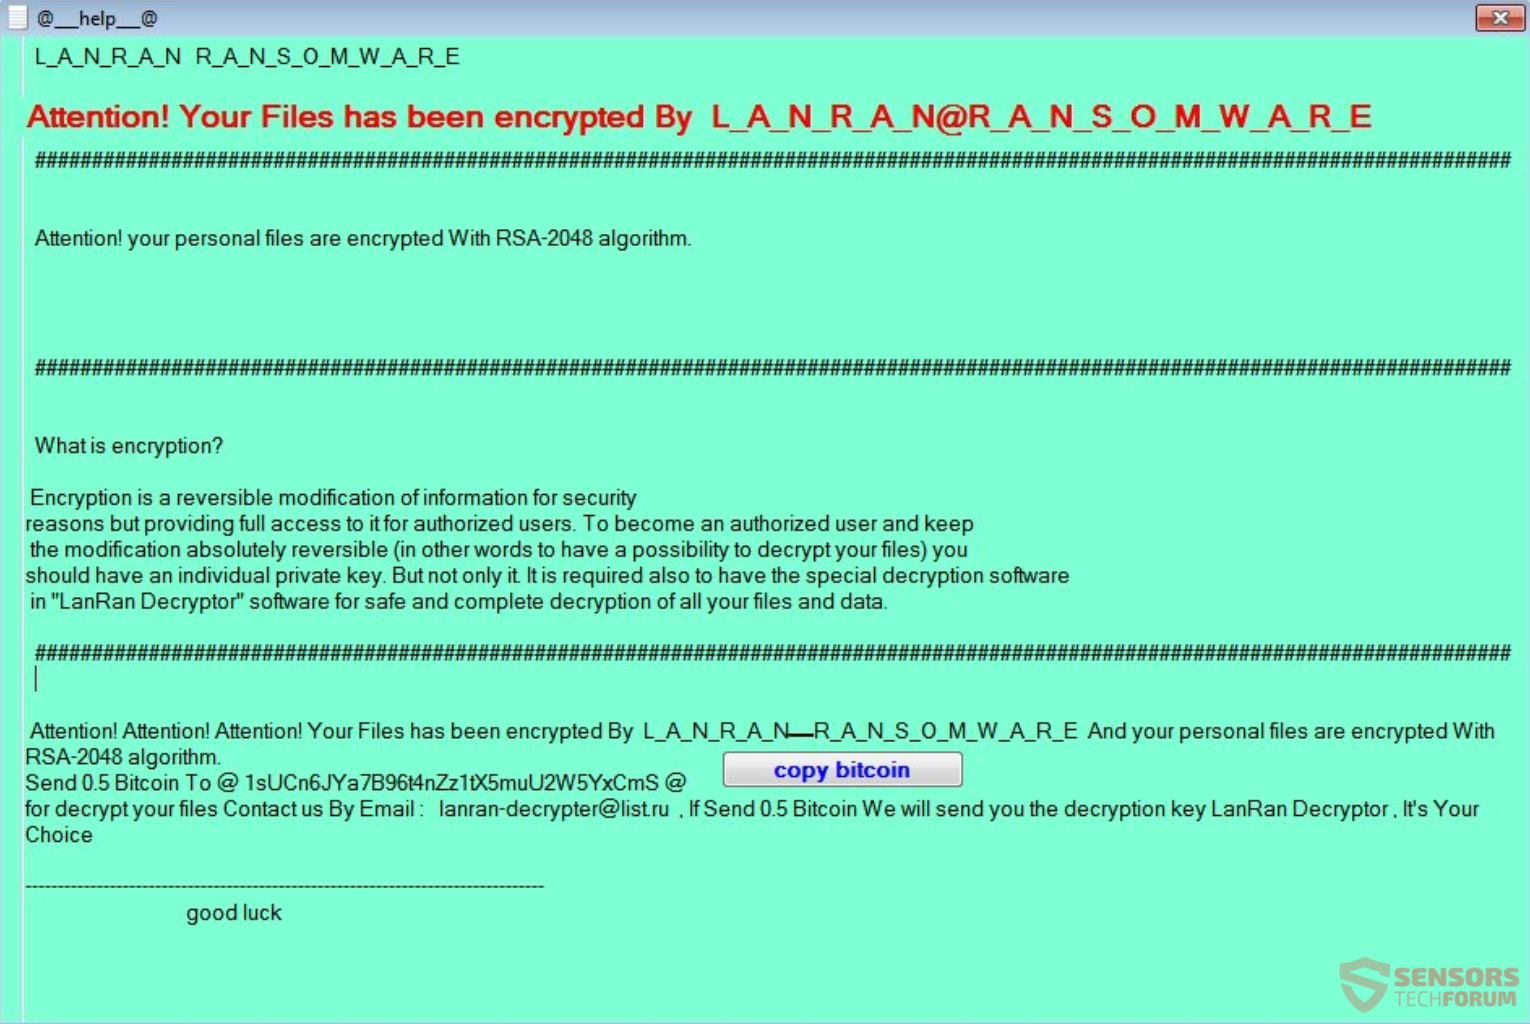 LanRan Ransomware \u2013 Remove It and Restore Your Files